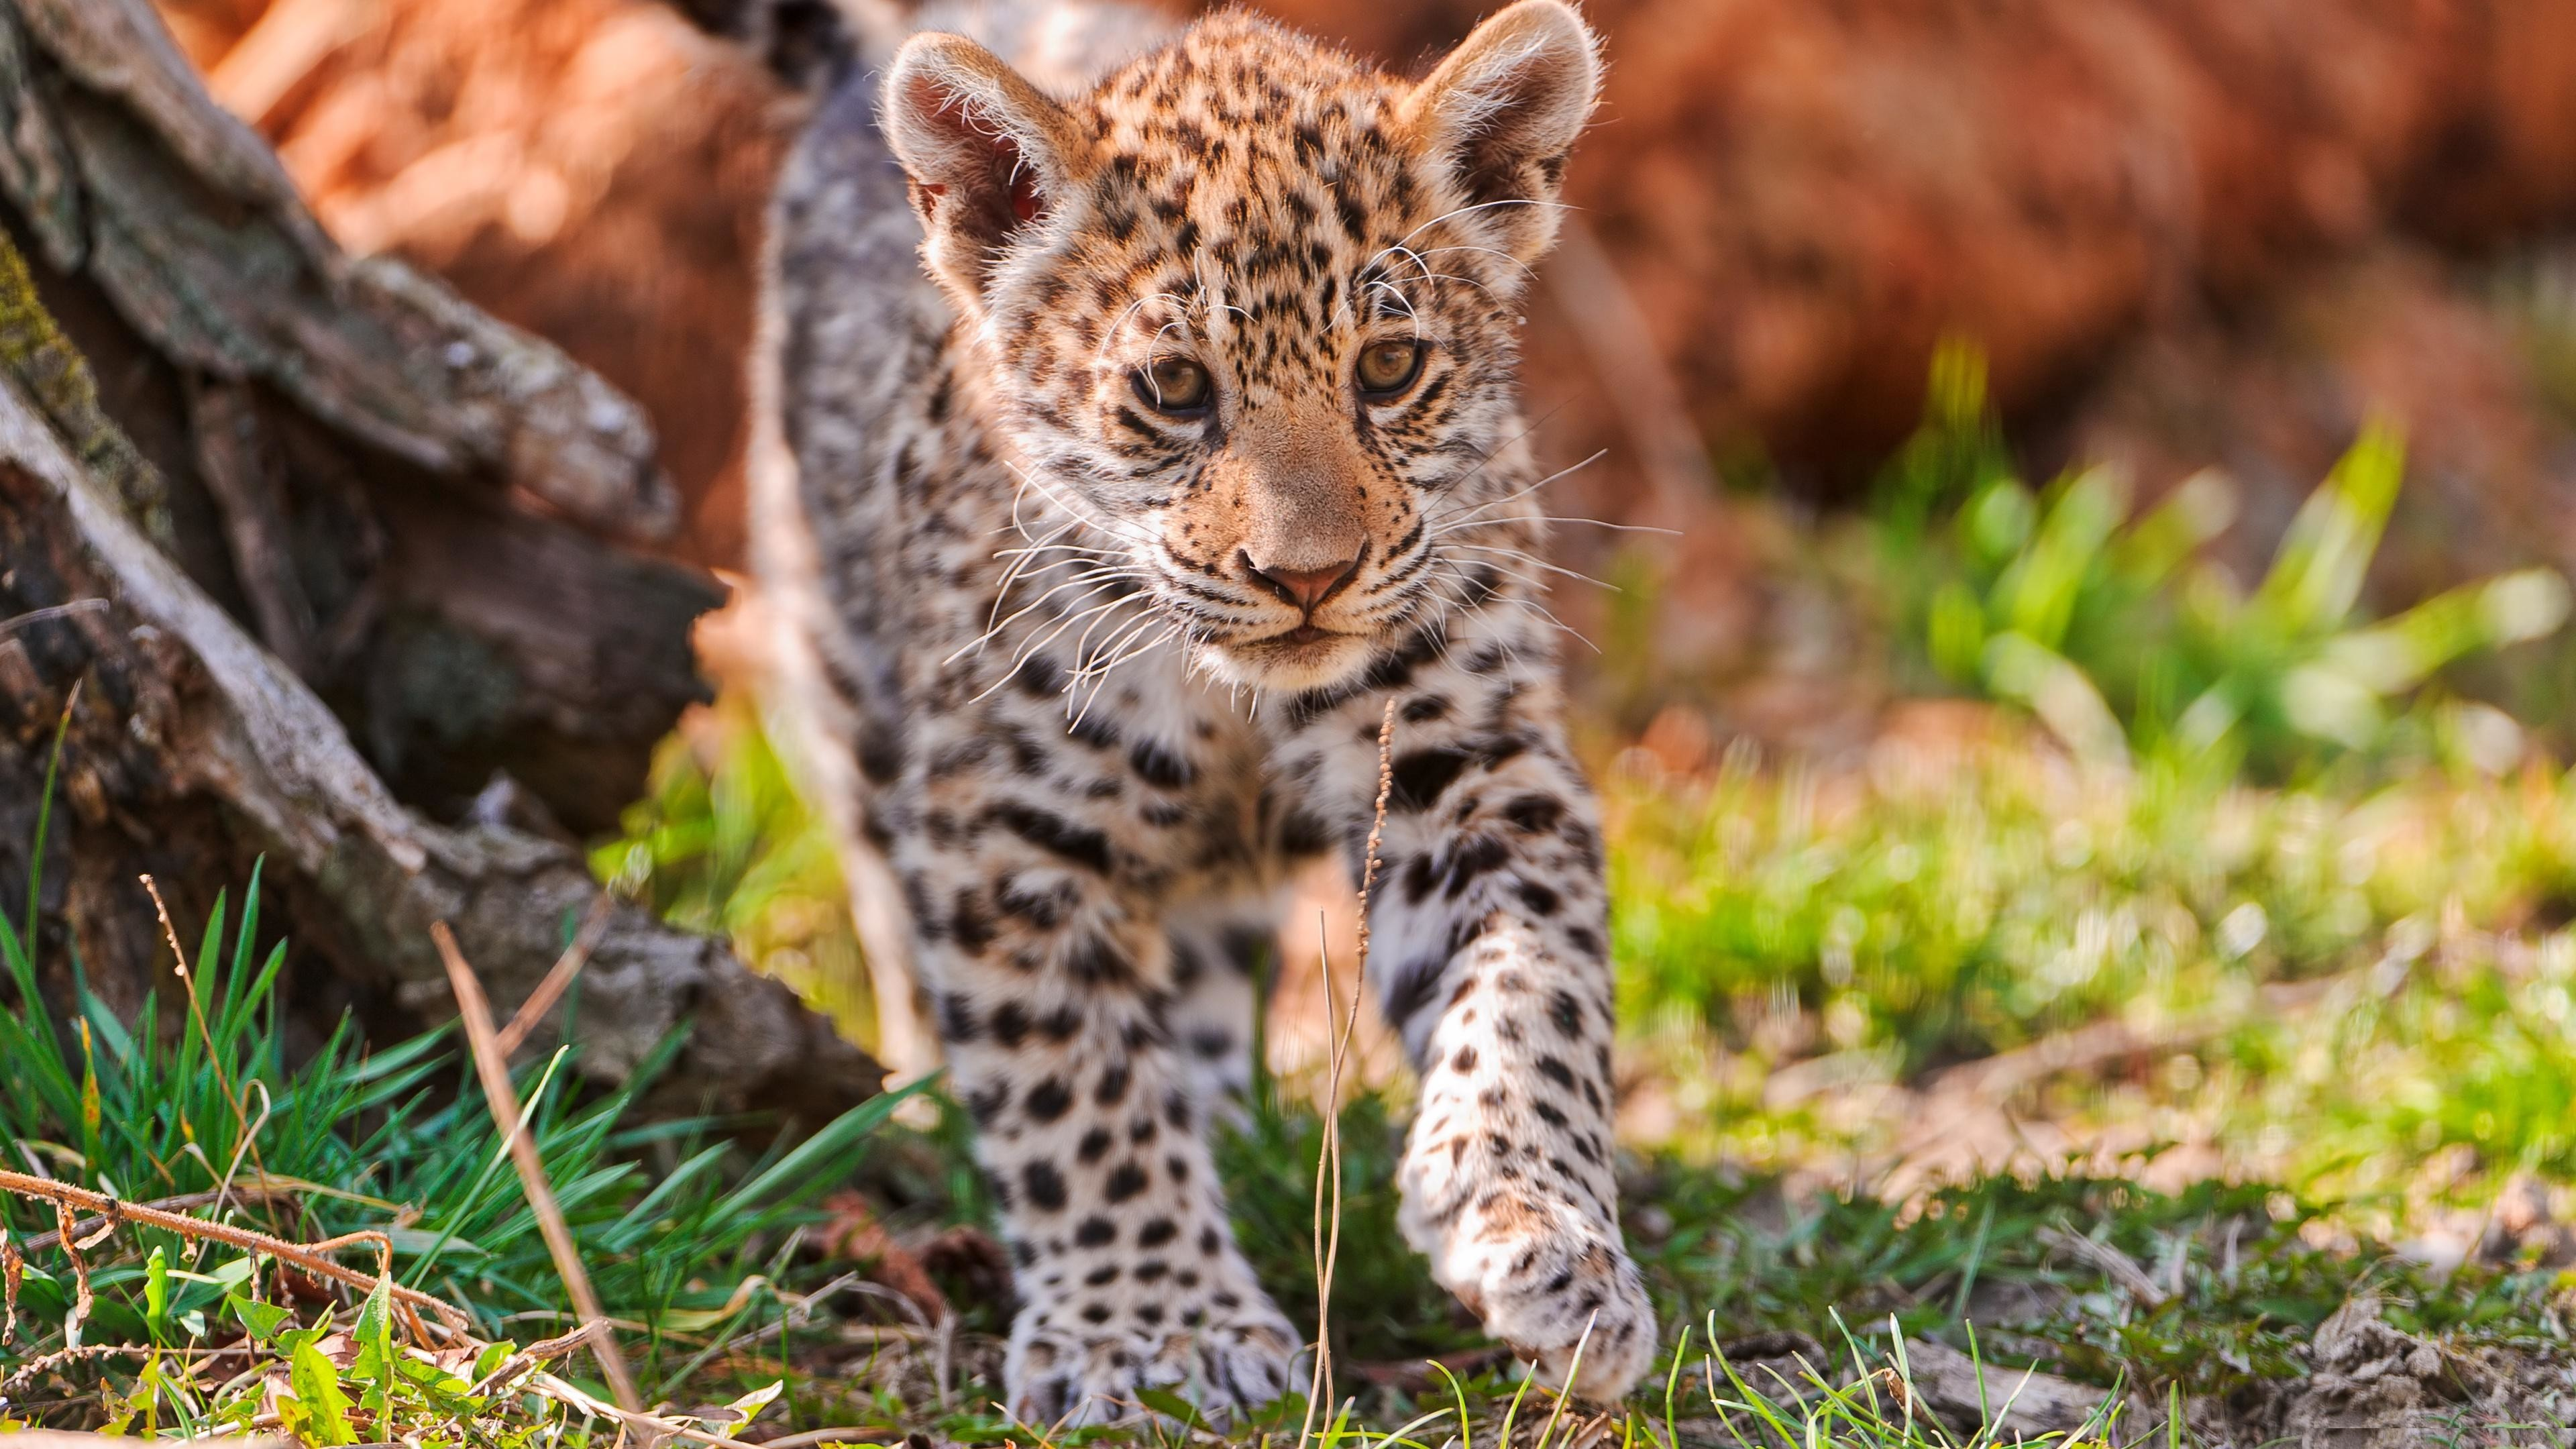 cute animals wallpapers (62+ images)